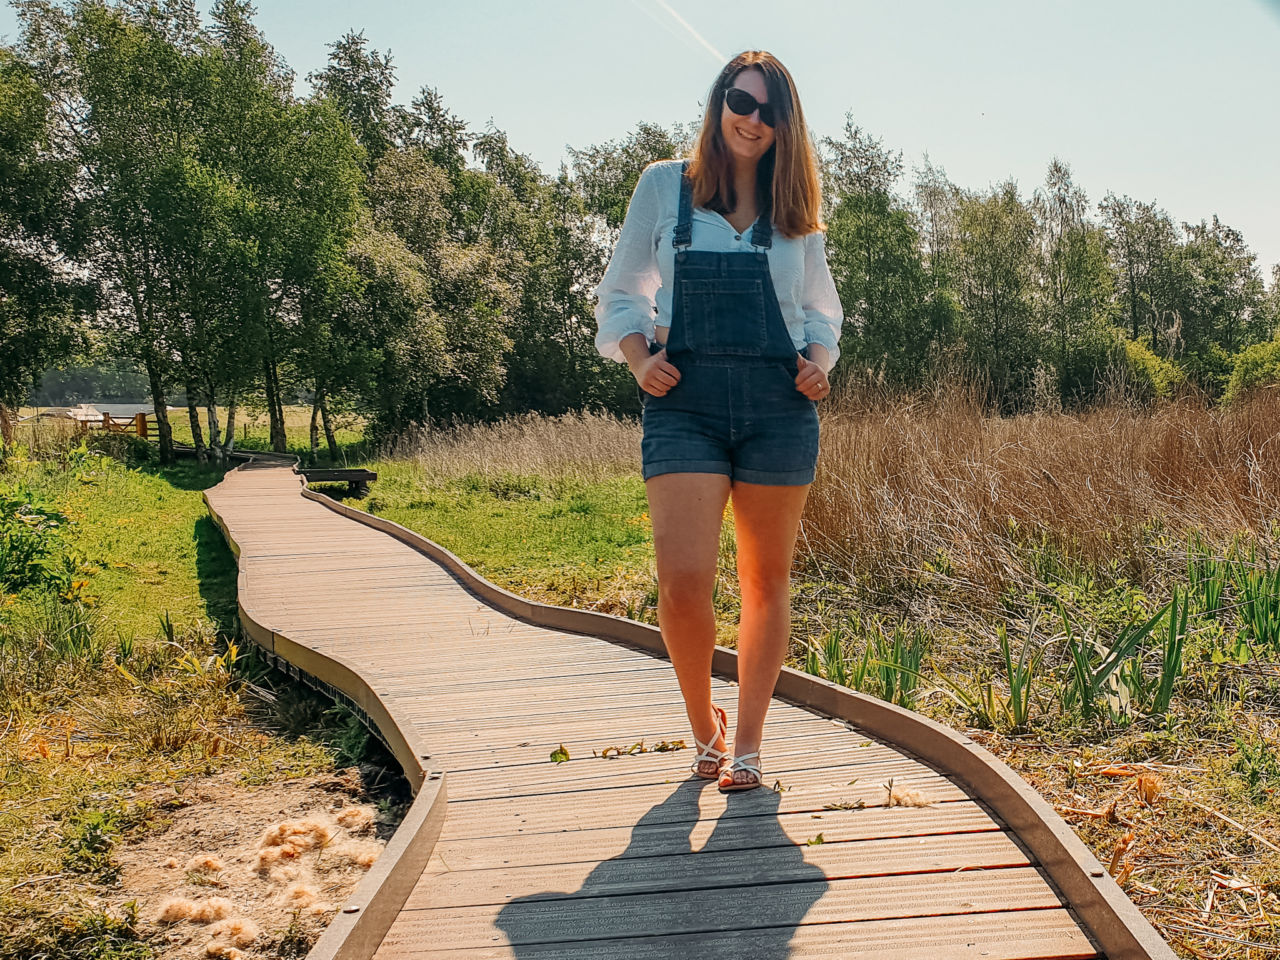 GAP dungaree shorts breastfeeding outfit